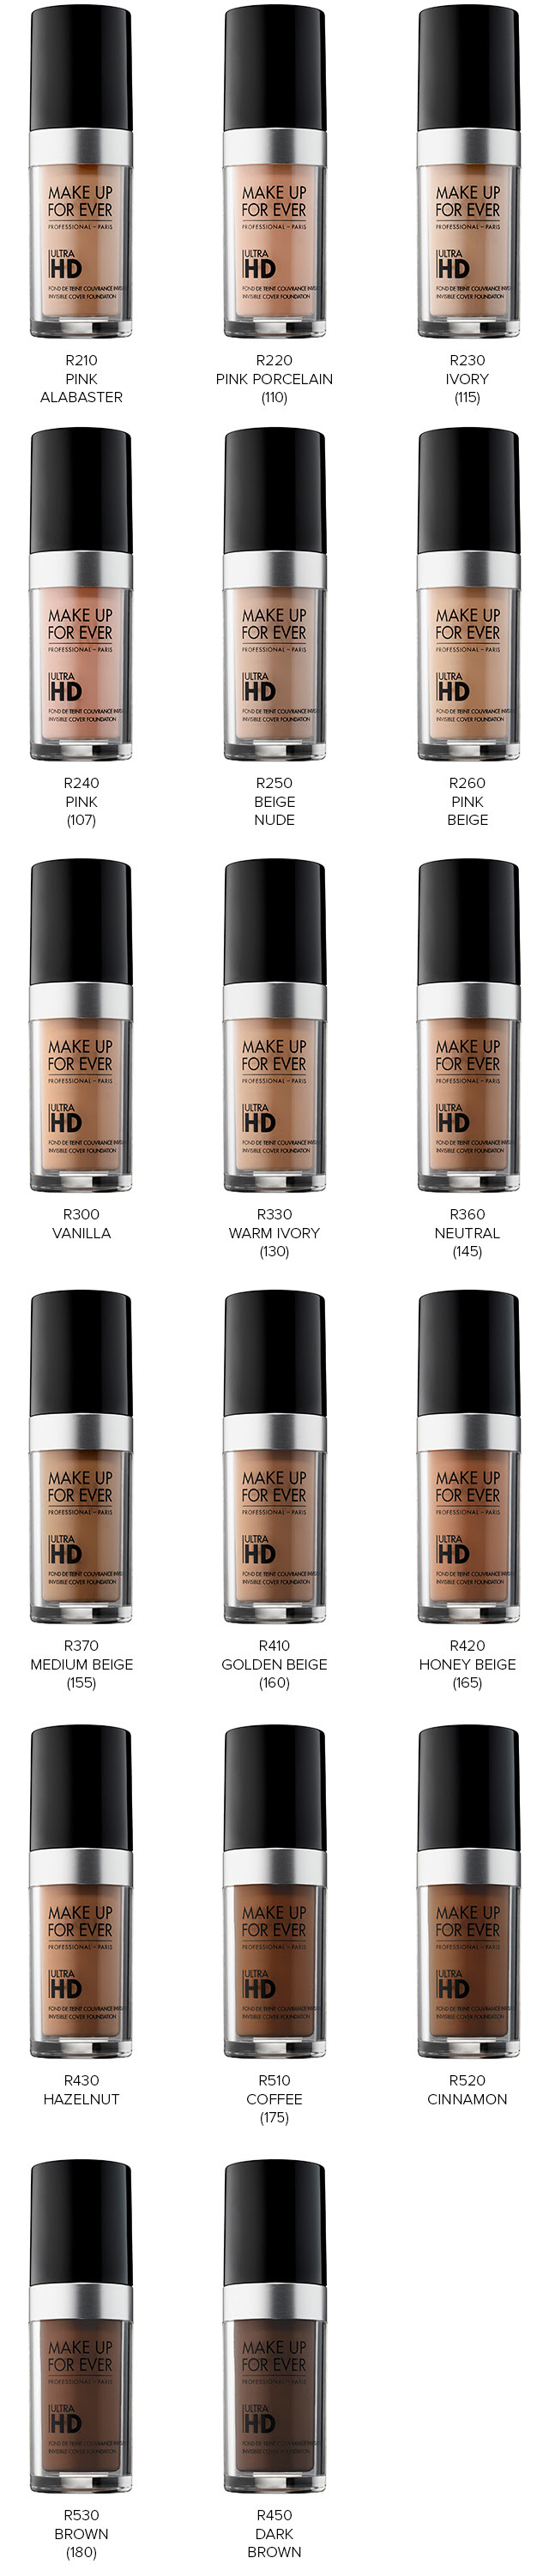 Make up for ever ultra hd foundation stick in y325